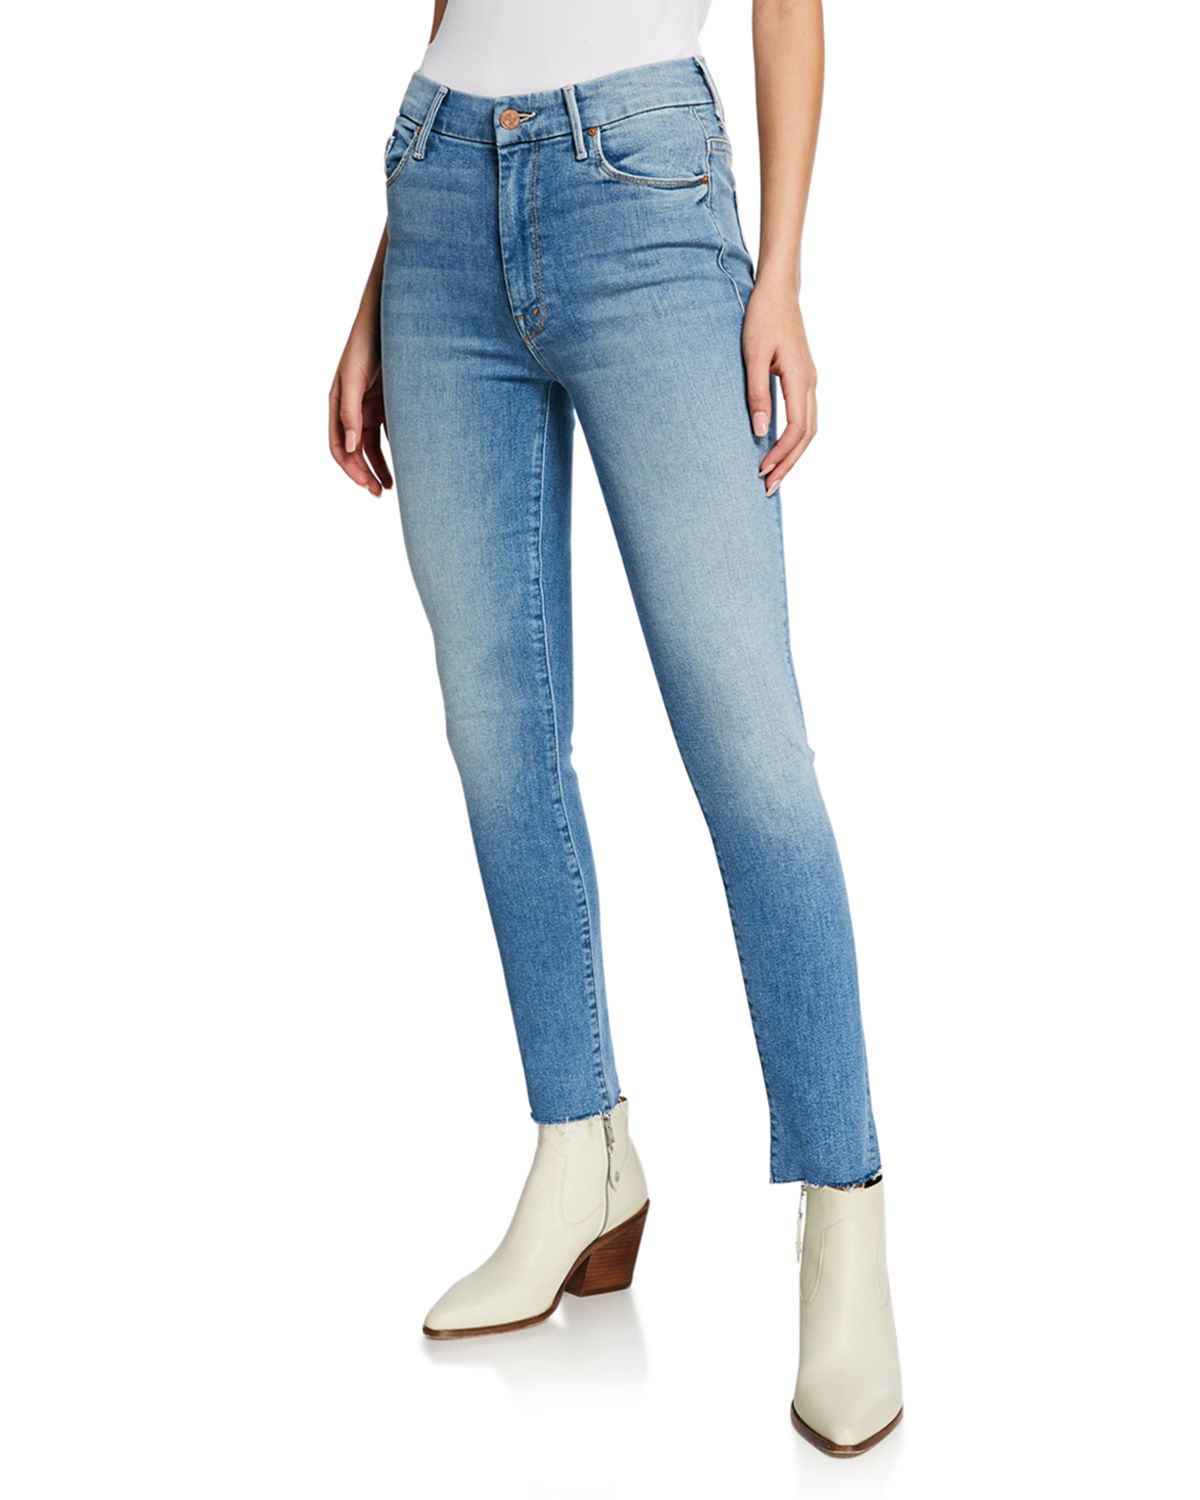 Waist Looker Frayed Mother High Marcus Ankle Skinny JeansNeiman Yb76gfyv